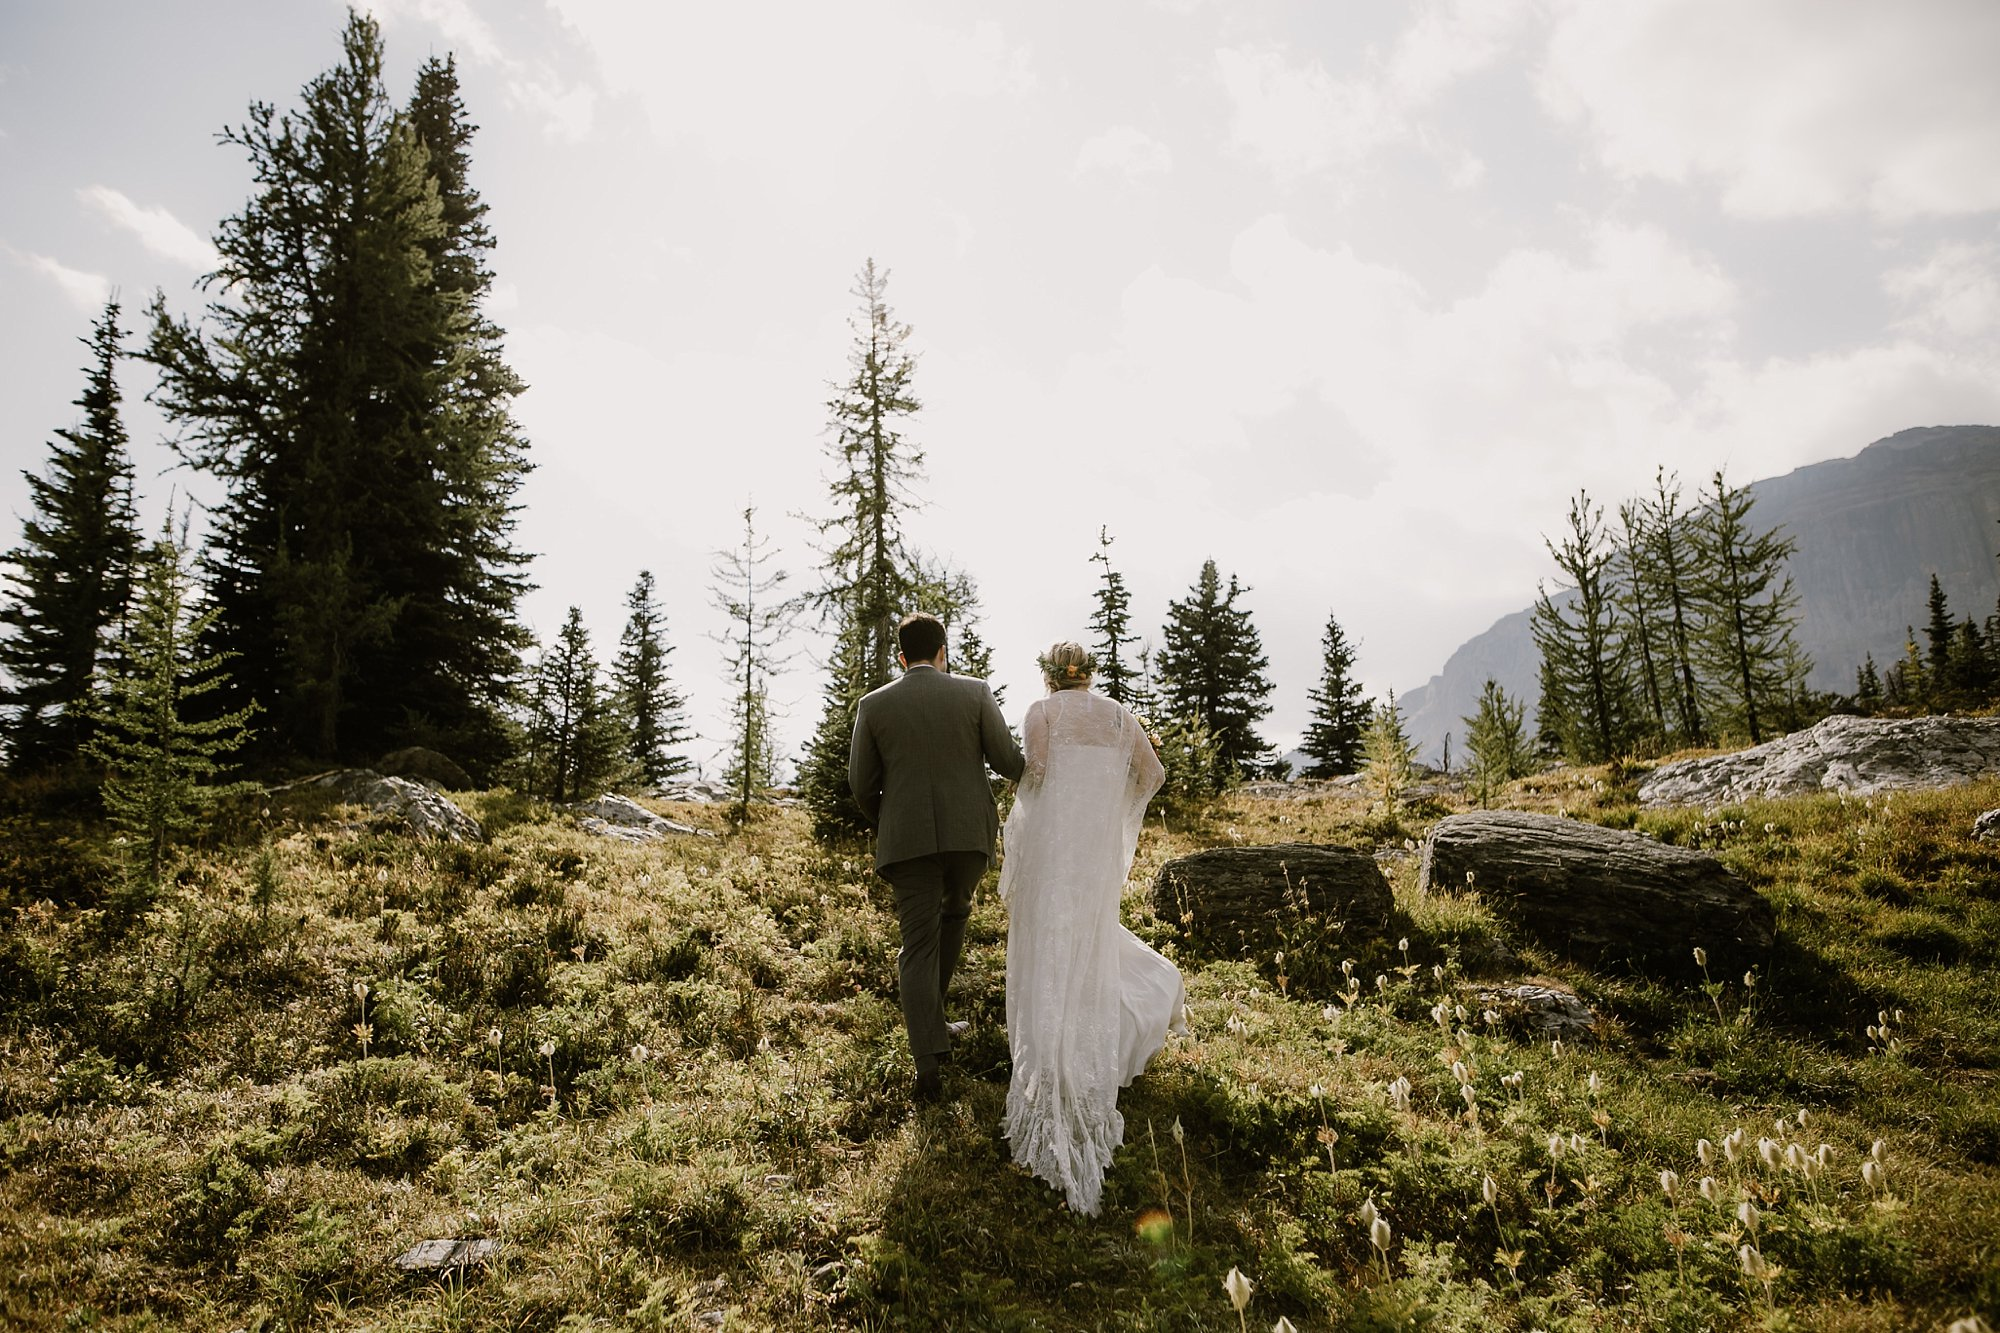 banff-canada-elopement-wedding_0023.jpg